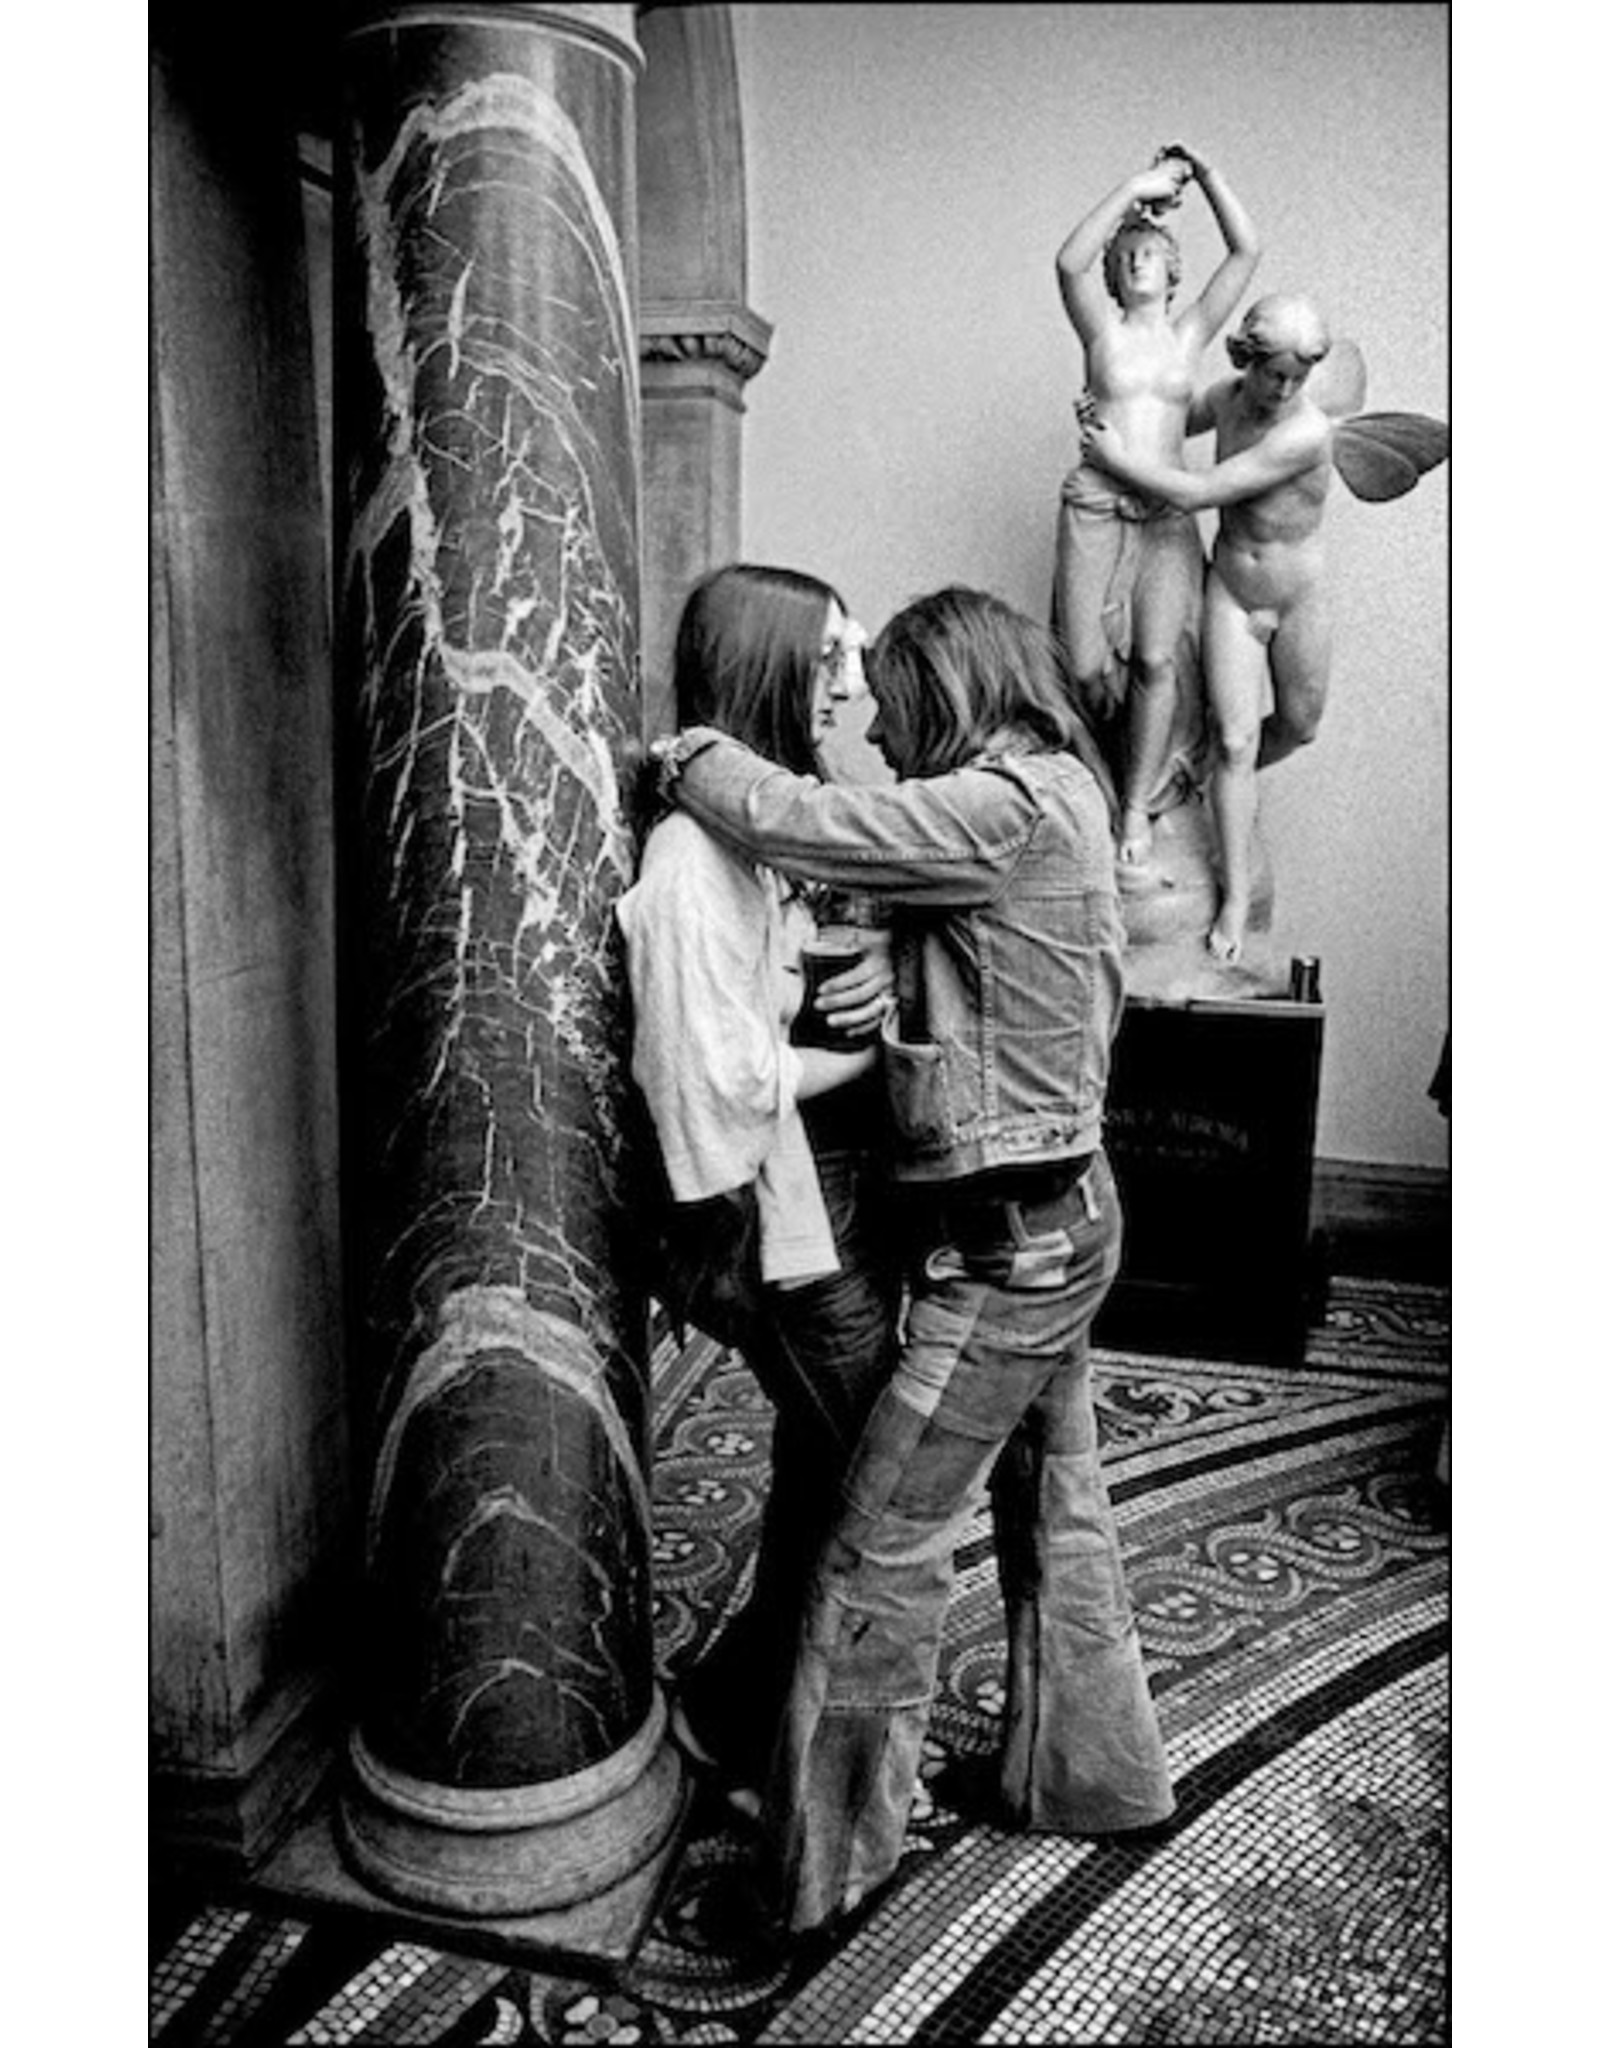 Ian Berry Young Couple in a Local Town Hall, London. Ian Berry (16)